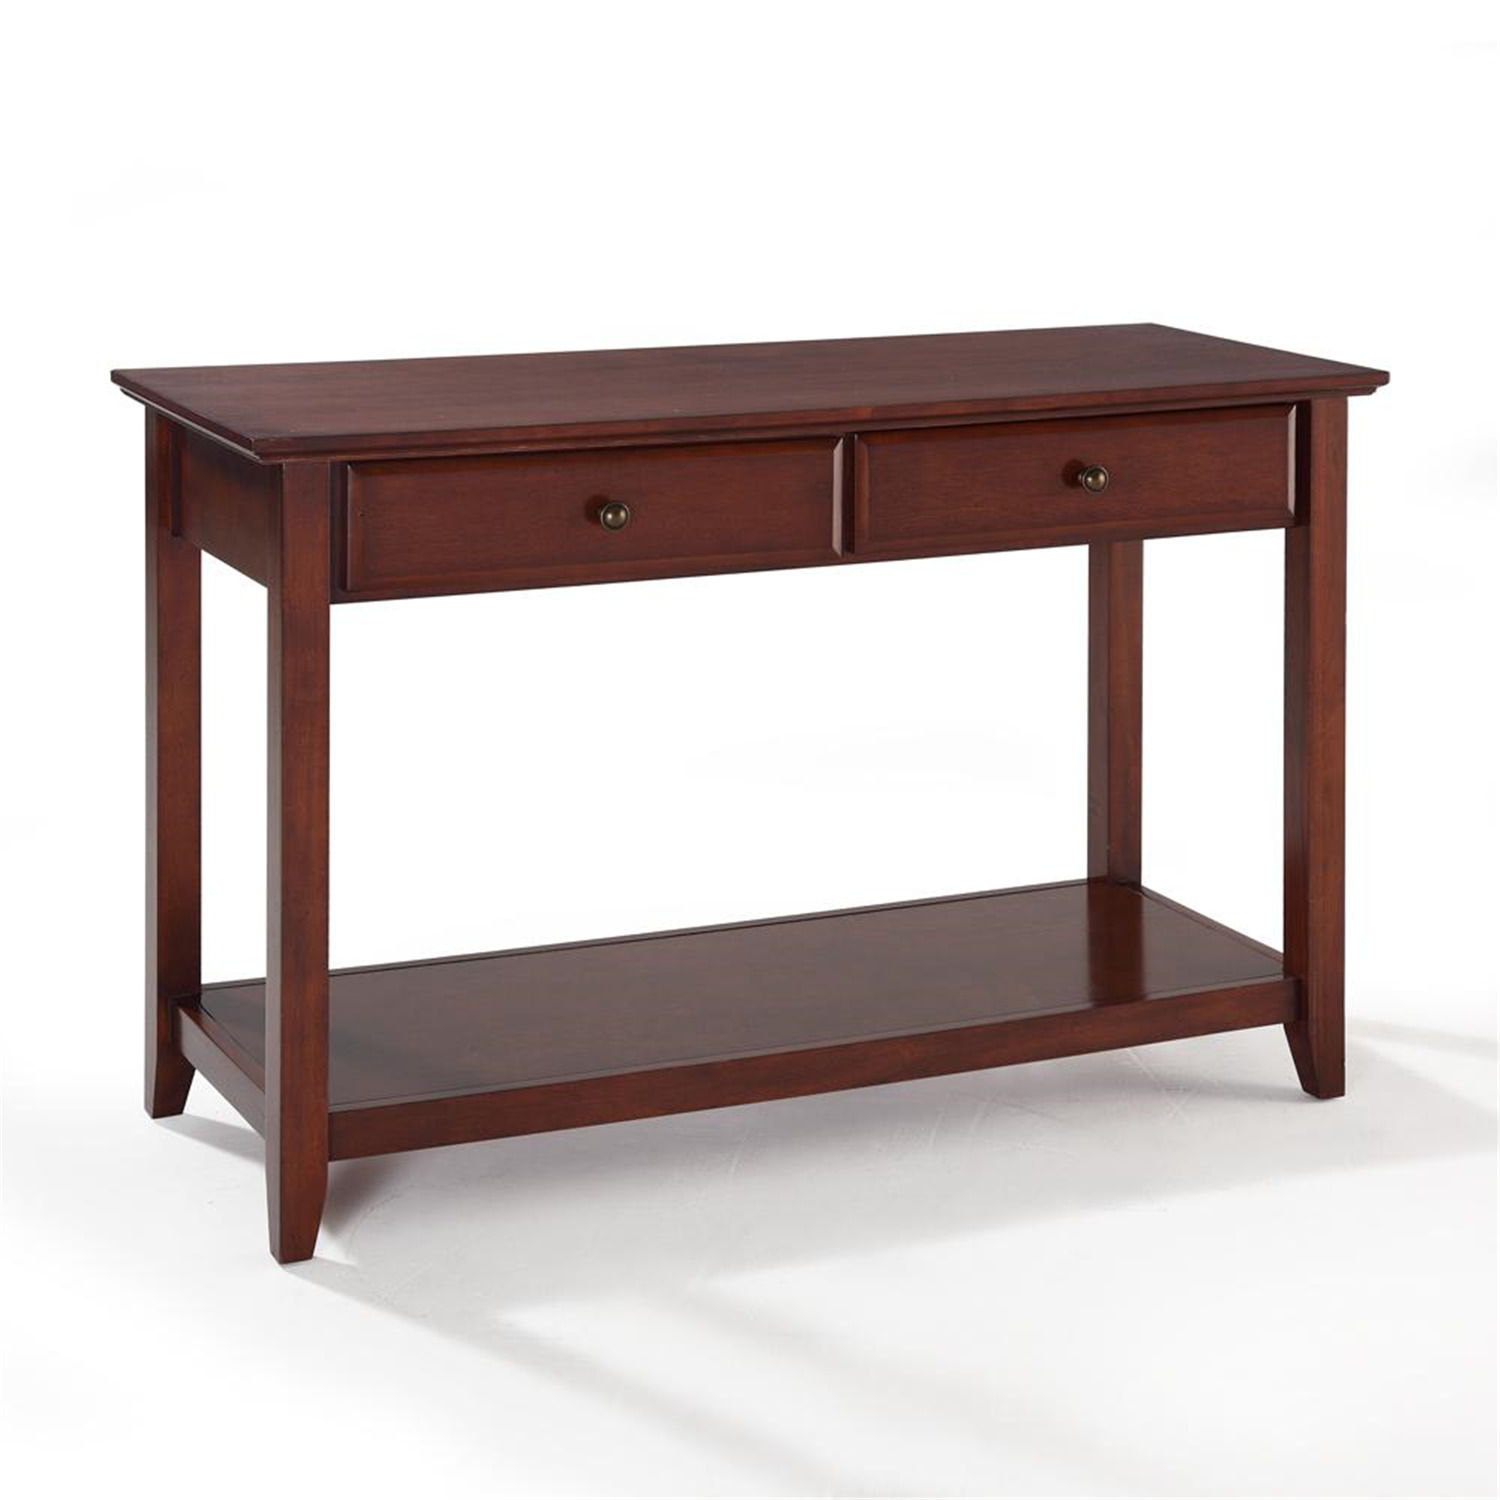 Crosley sofa table with storage drawers by oj commerce for Sofa table large